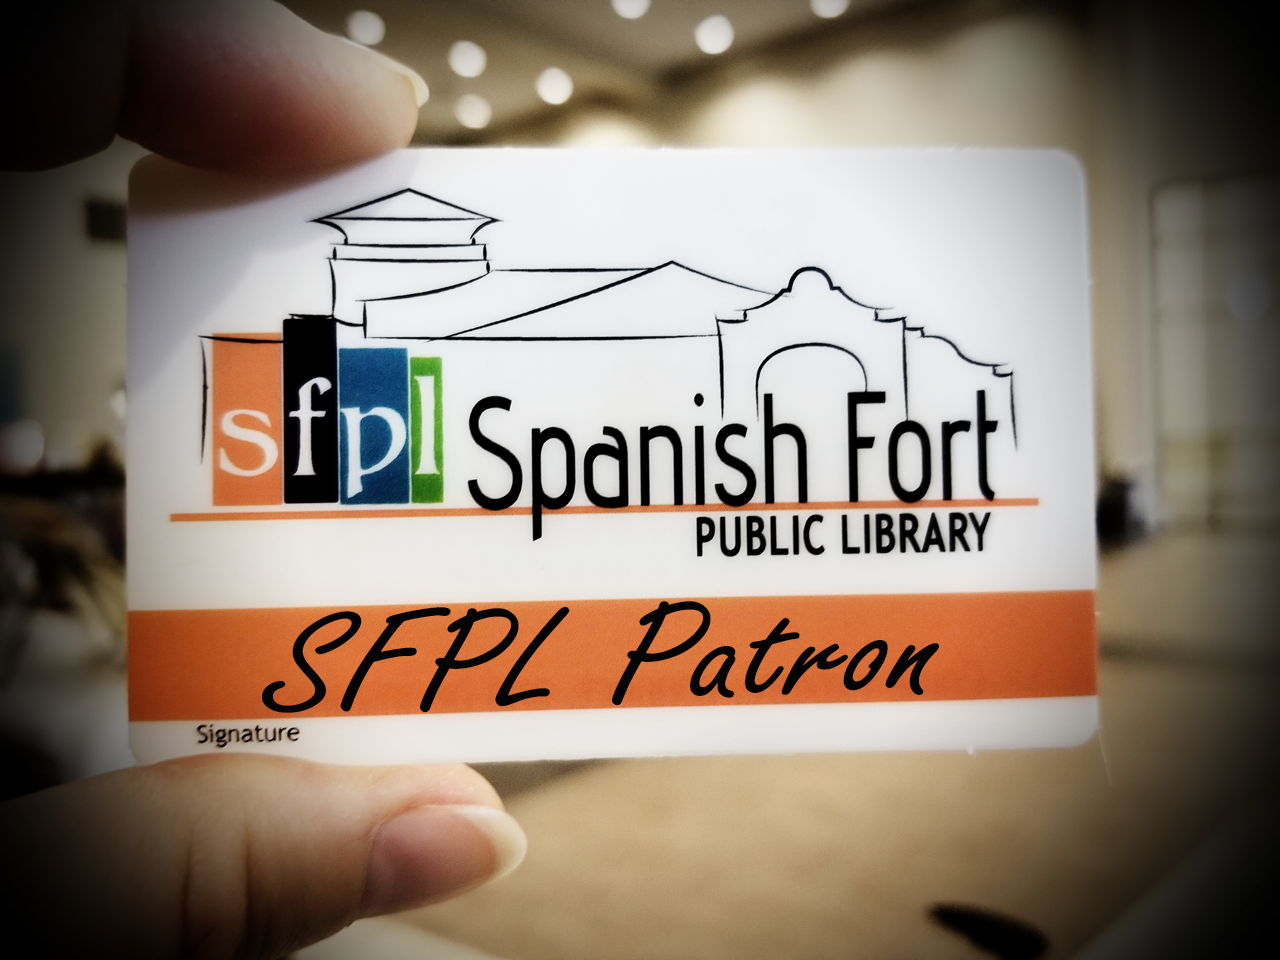 close-up photograph of a hand holding up a Spanish Fort Public Library patron card